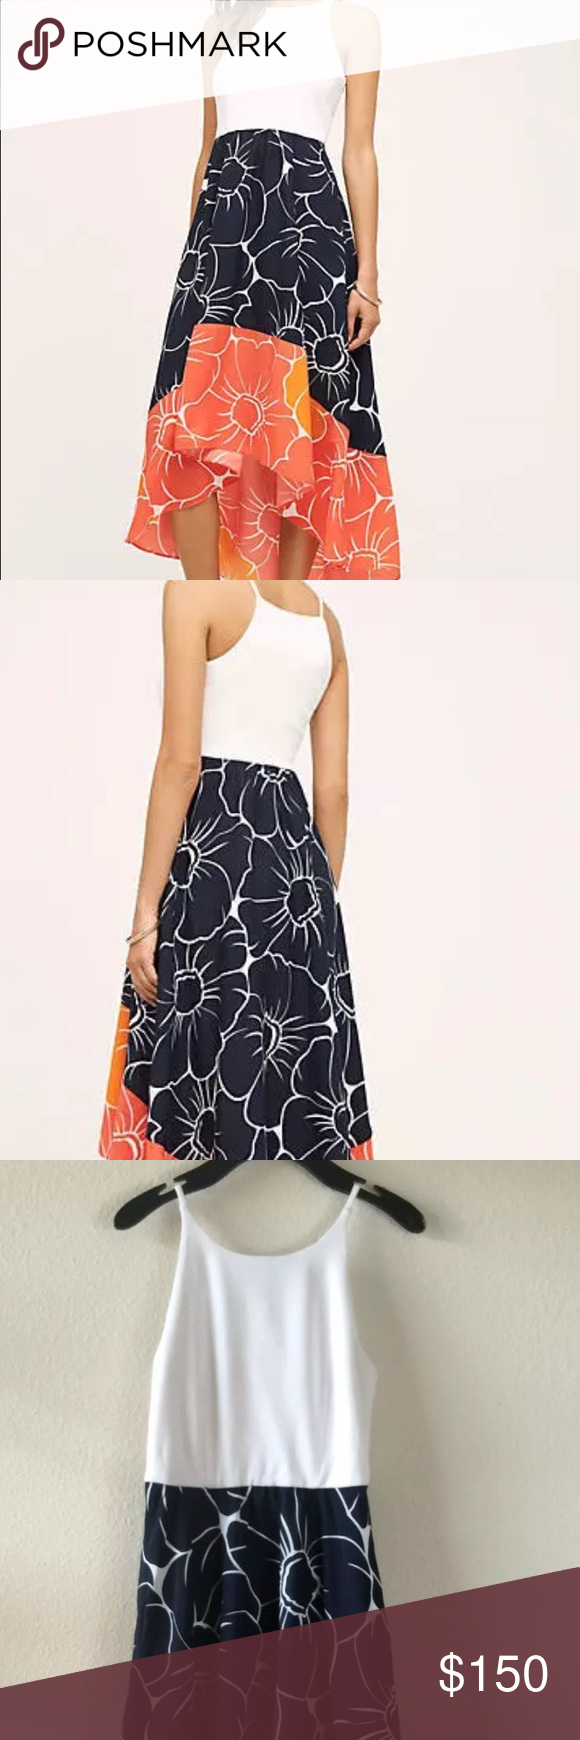 dfd83724da2a Hutch Anthropologie hi low dress sz large nwt Brand new with Anthropologie  tags! Size large. Gorgeous dress!! Anthropologie Dresses High Low